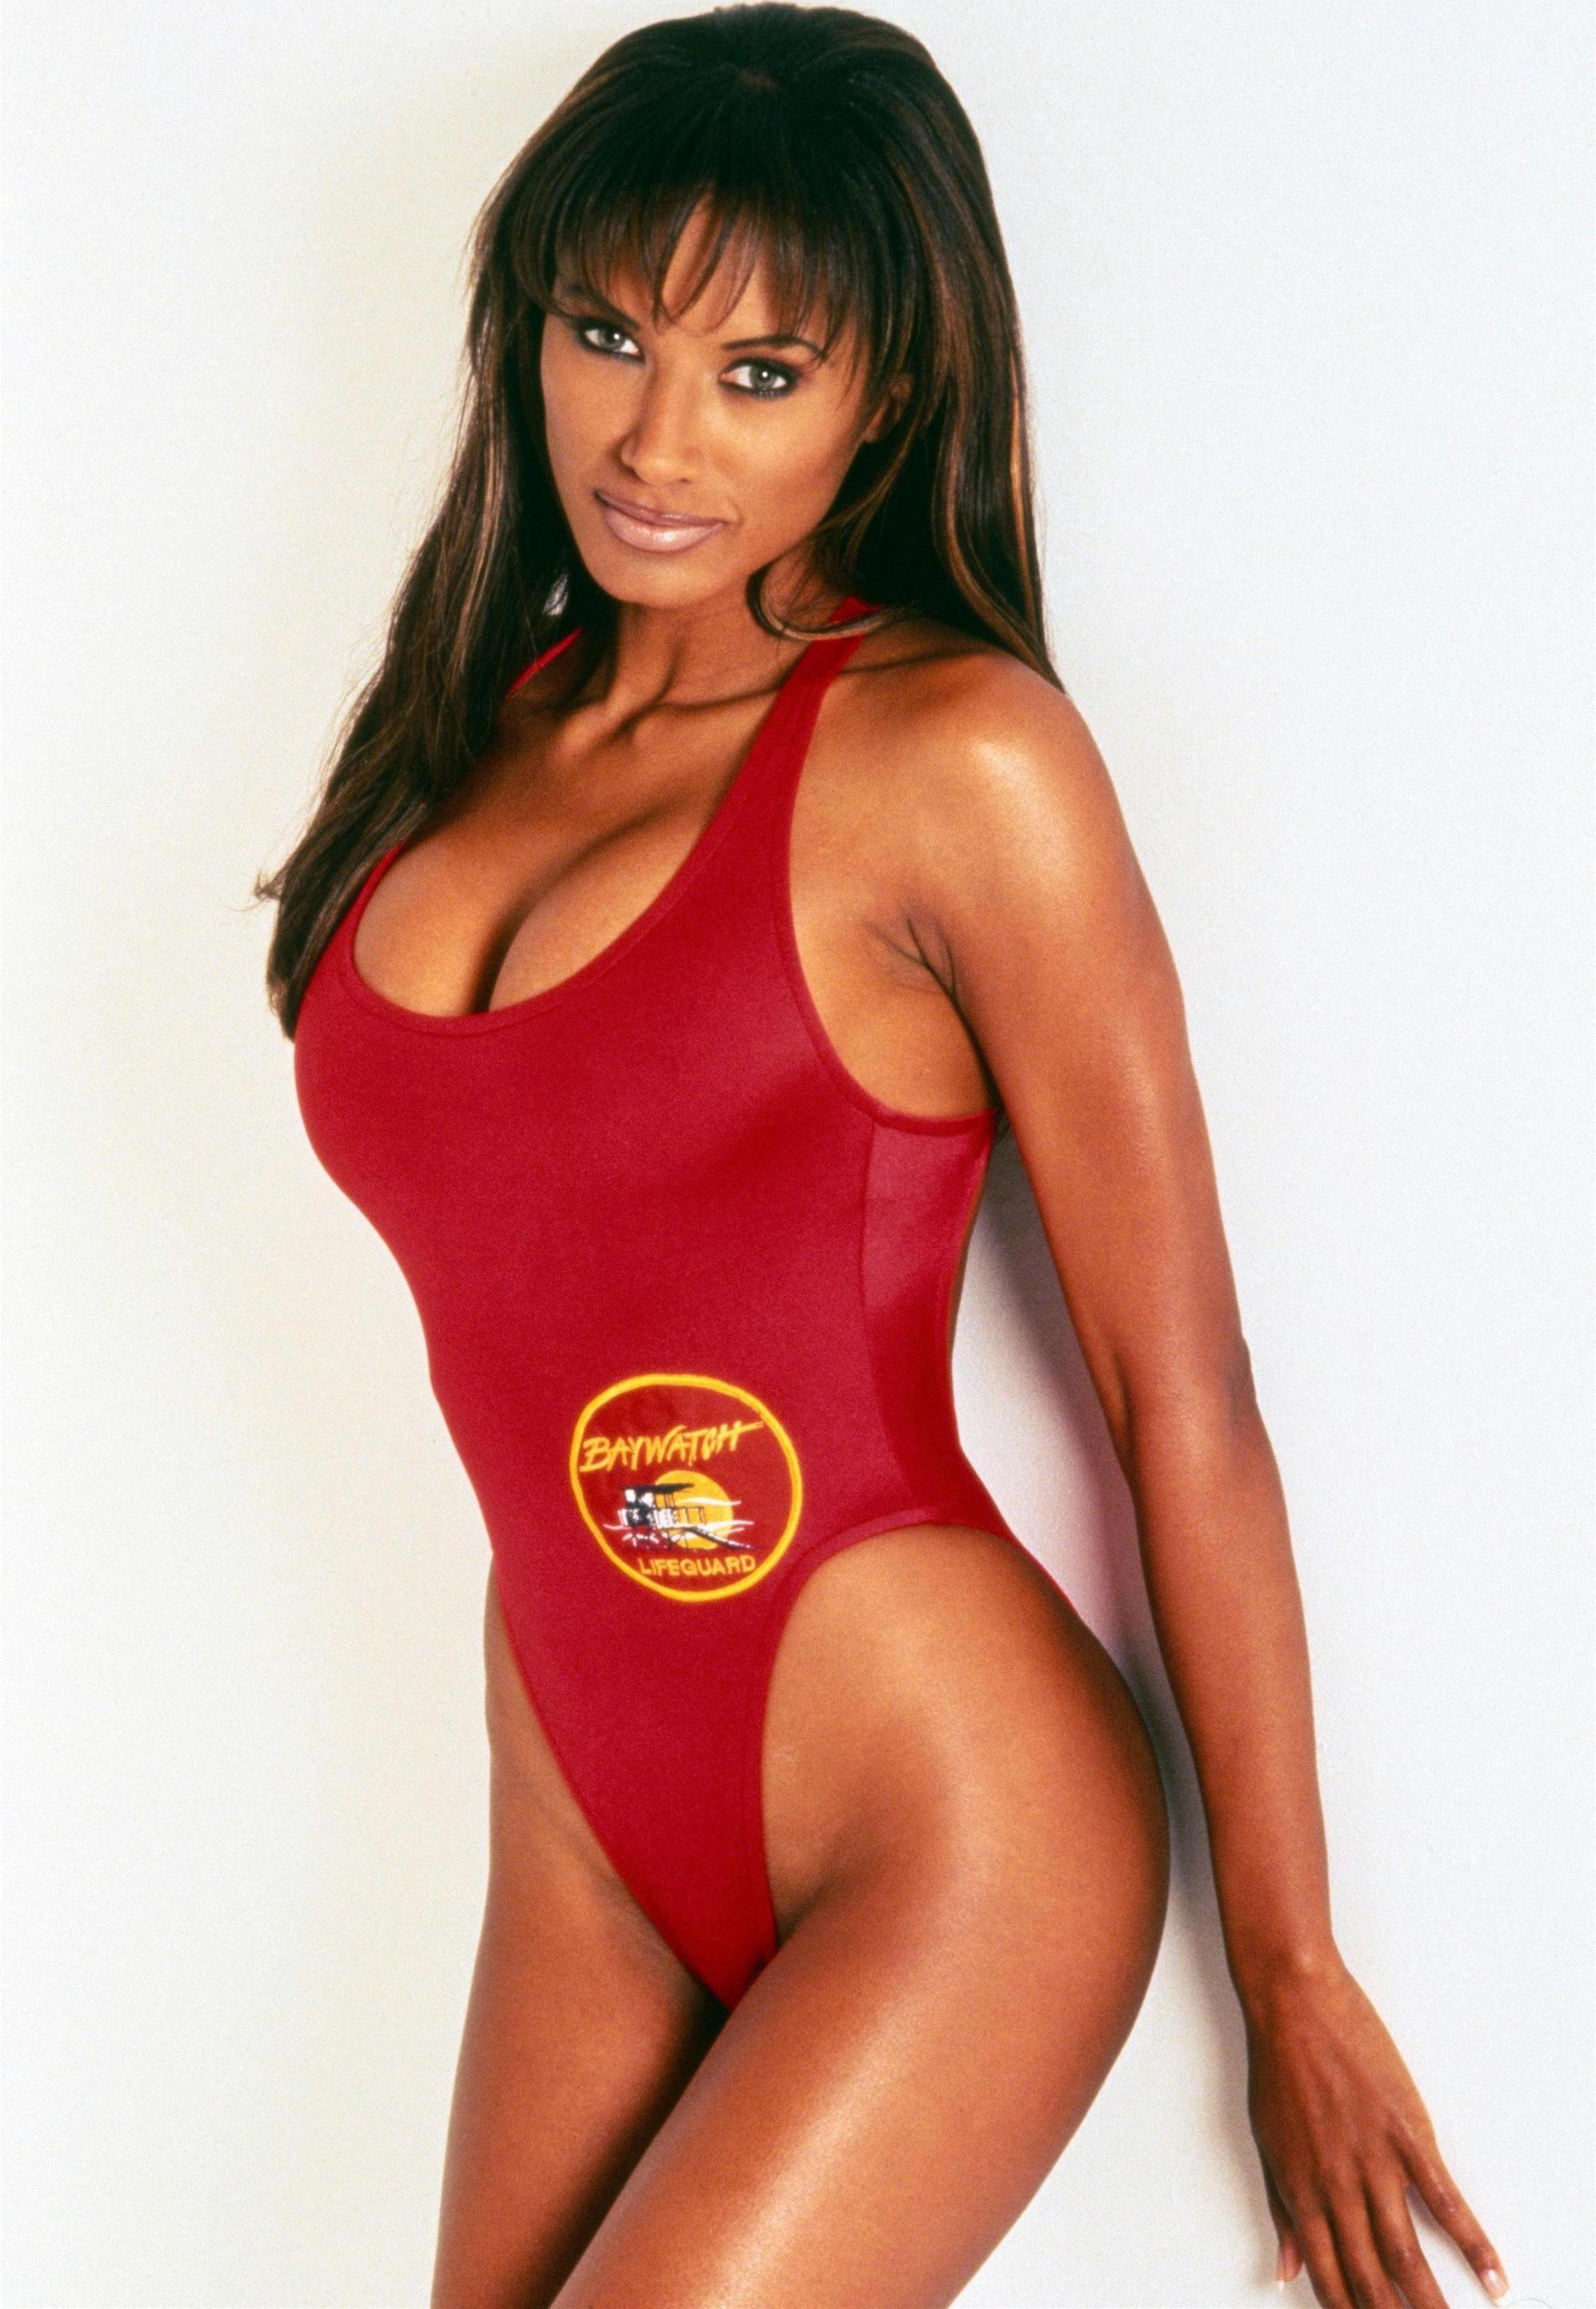 Baywatch nude women young black